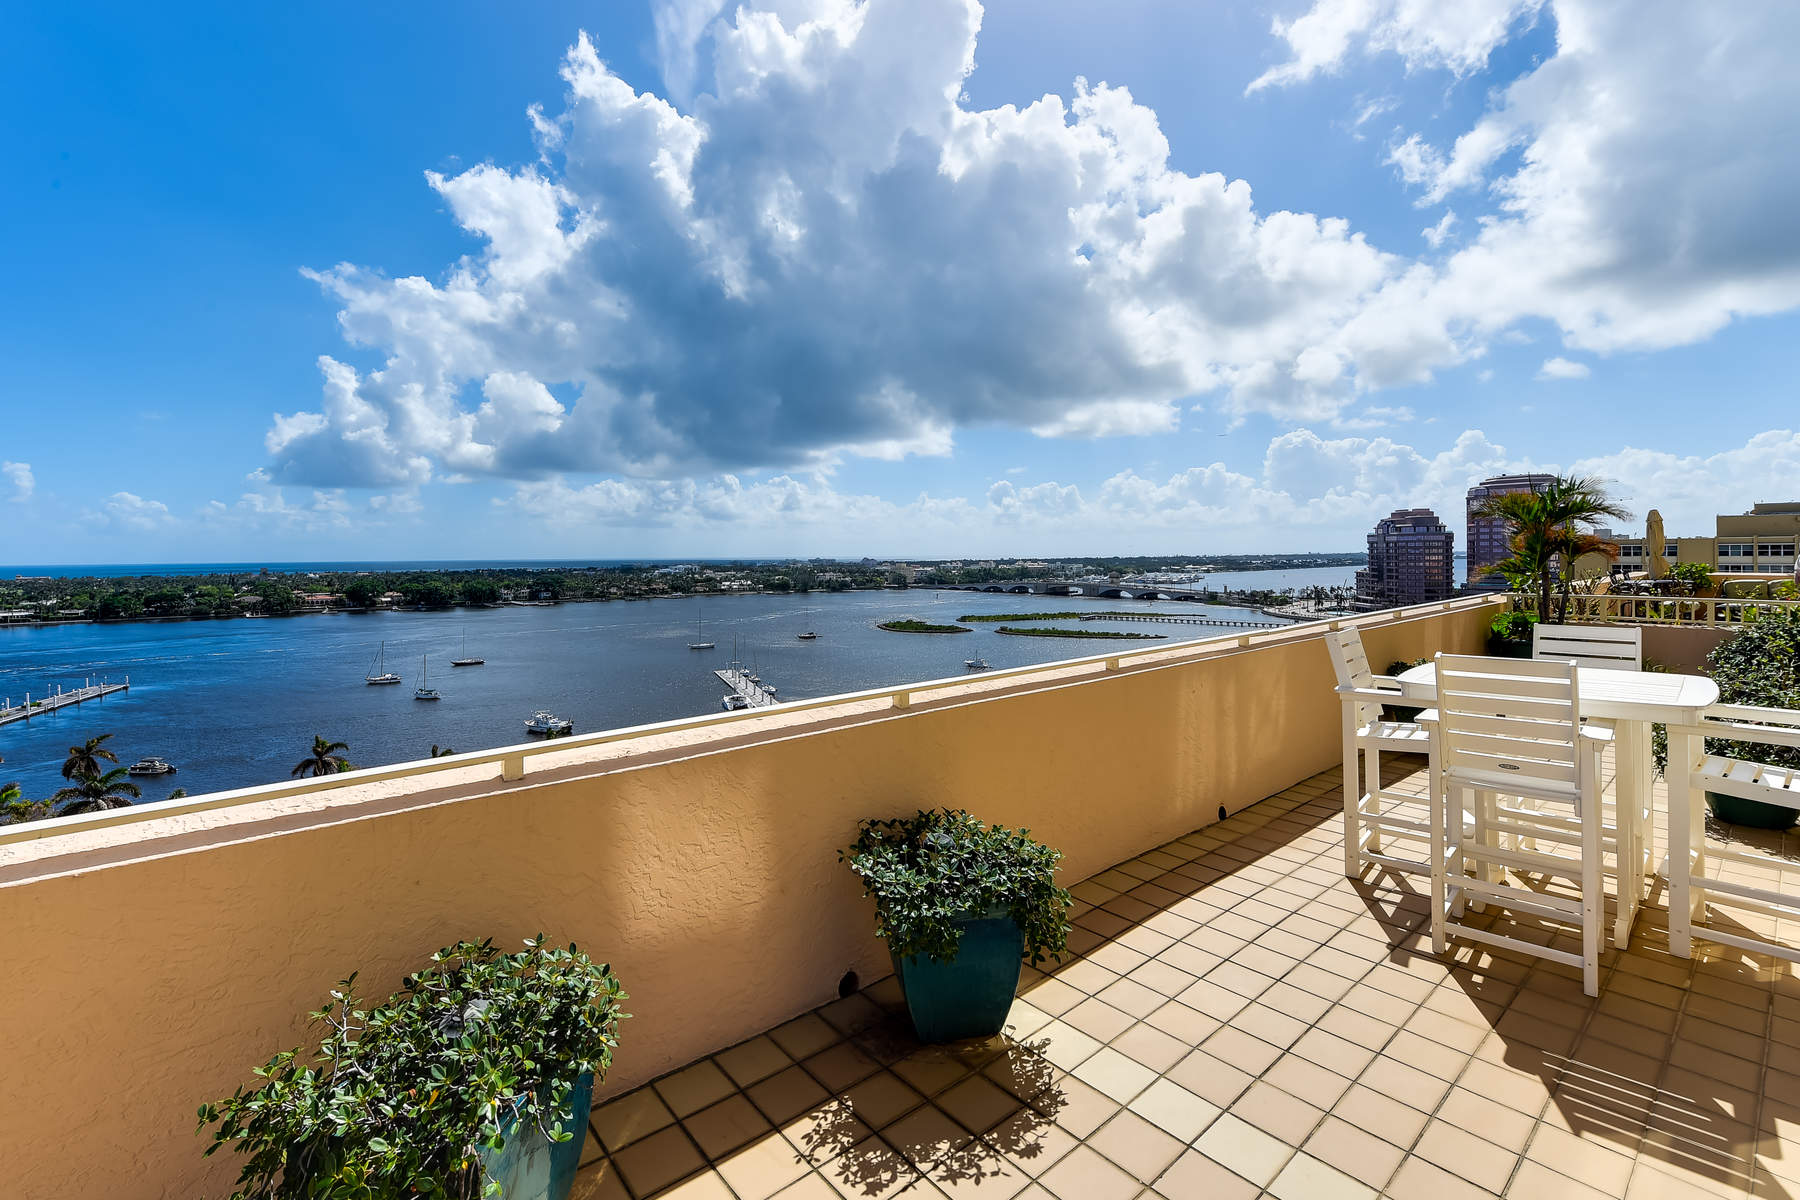 Condominium for Sale at Amazing Outdoor Living and Views 255 Evernia Street 1104, West Palm Beach, Florida, 33401 United States